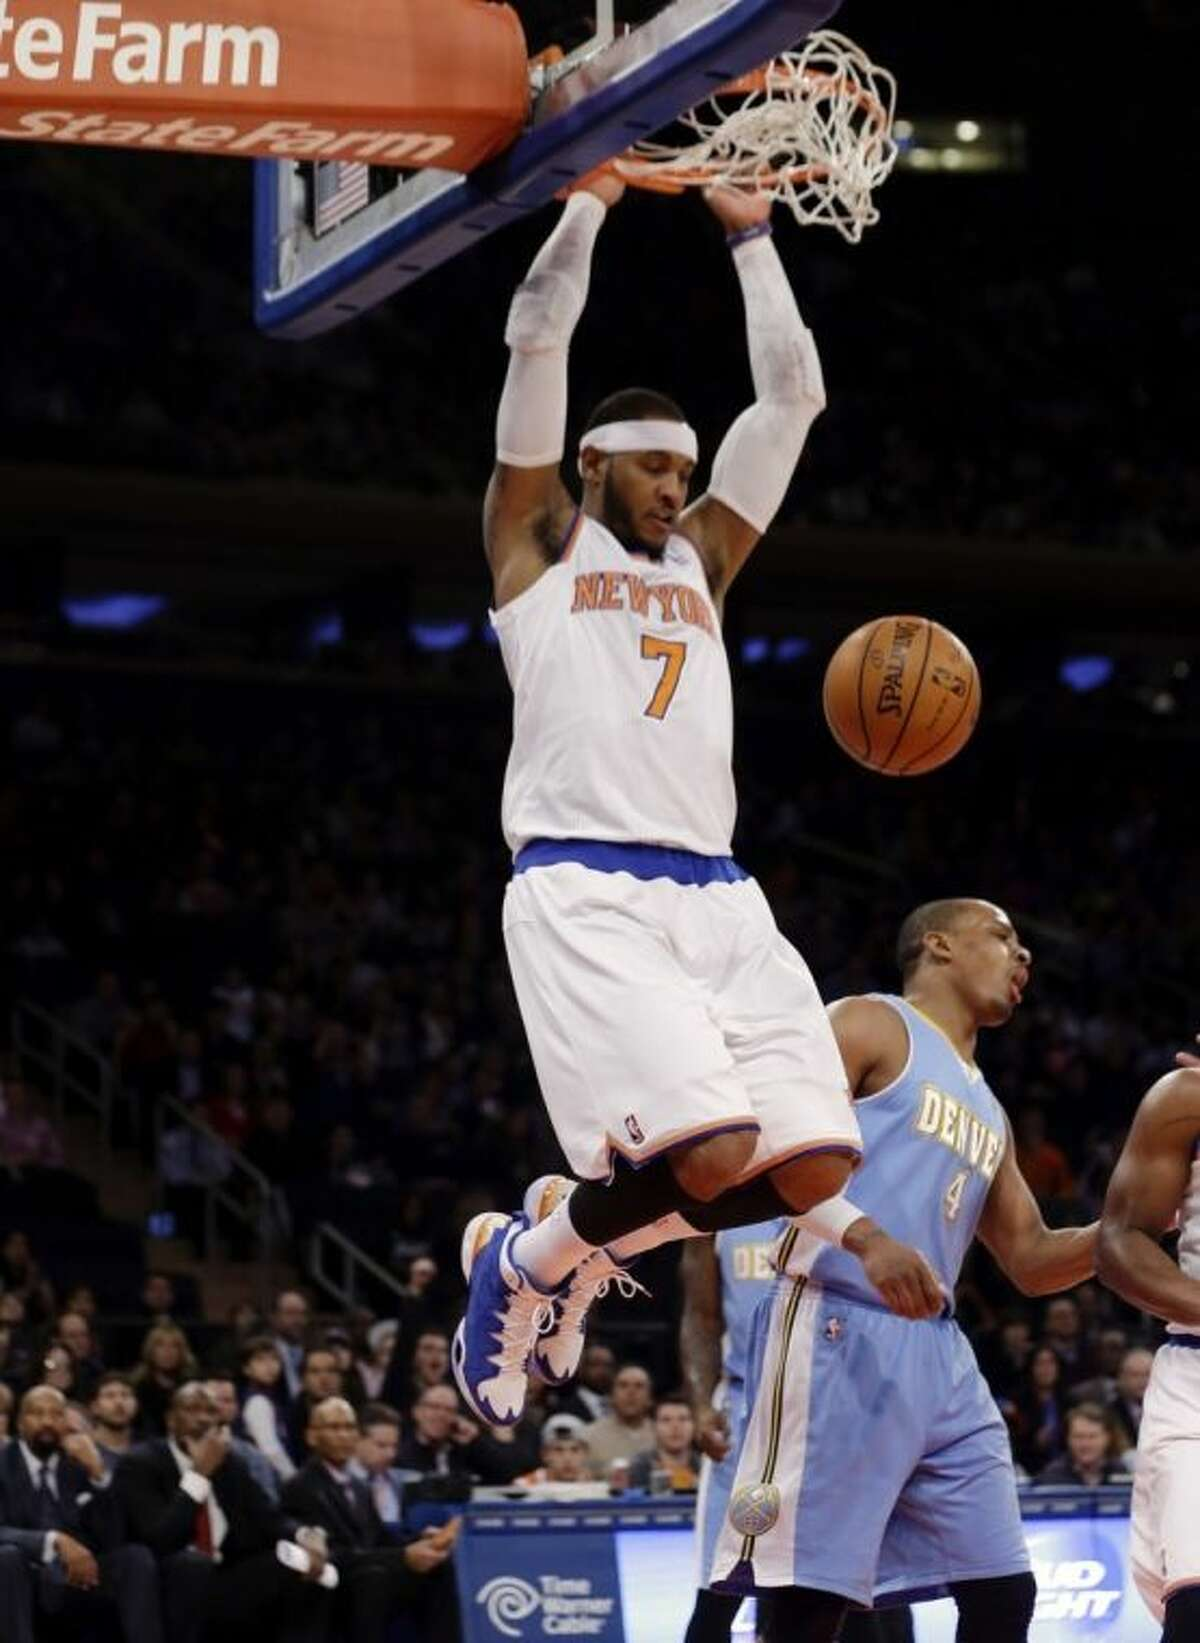 New York Knicks' Carmelo Anthony (7) dunks next to Denver Nuggets' Randy Foye (4) during the first half of an NBA basketball game Friday, Feb. 7, 2014, in New York. (AP Photo/Frank Franklin II)